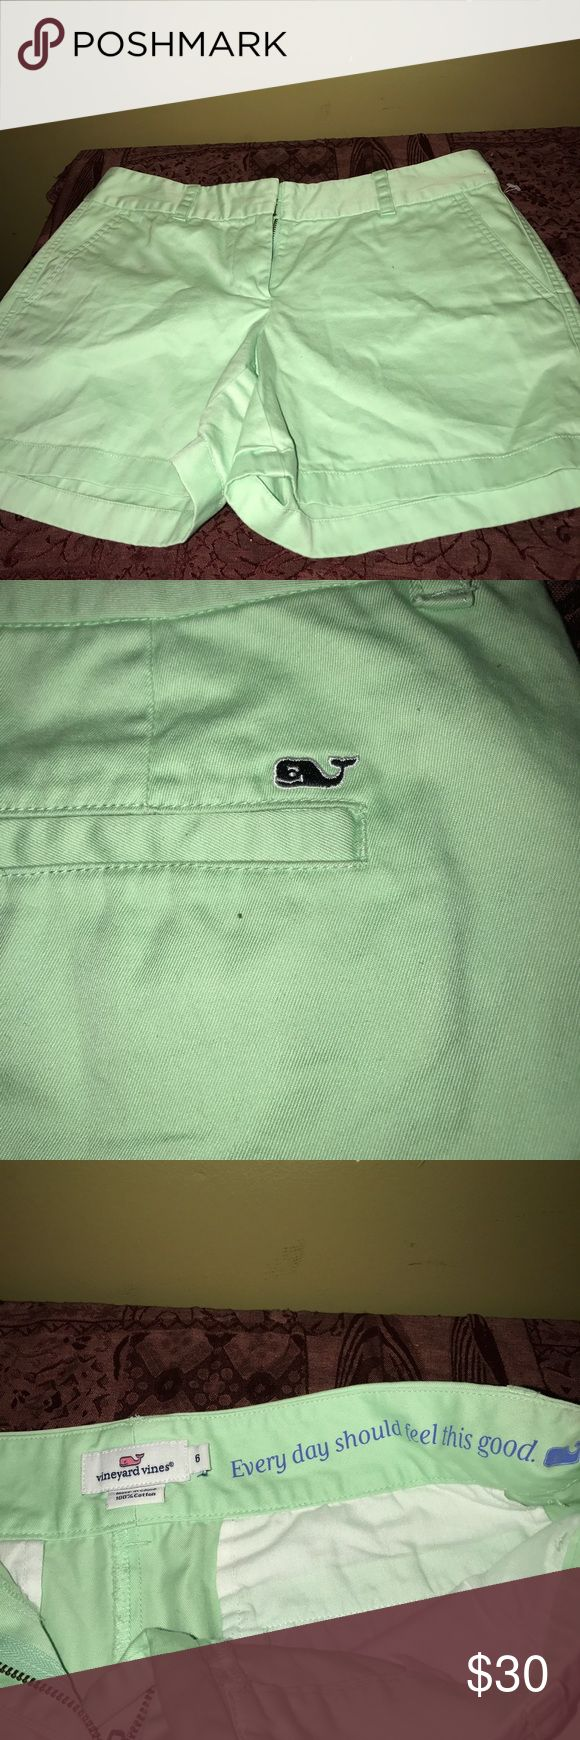 Vineyard Vines women chino shorts size 6 Vineyard vines women chino lime green shorts size 6 100% cotton small stain shown in picture Vineyard Vines Shorts